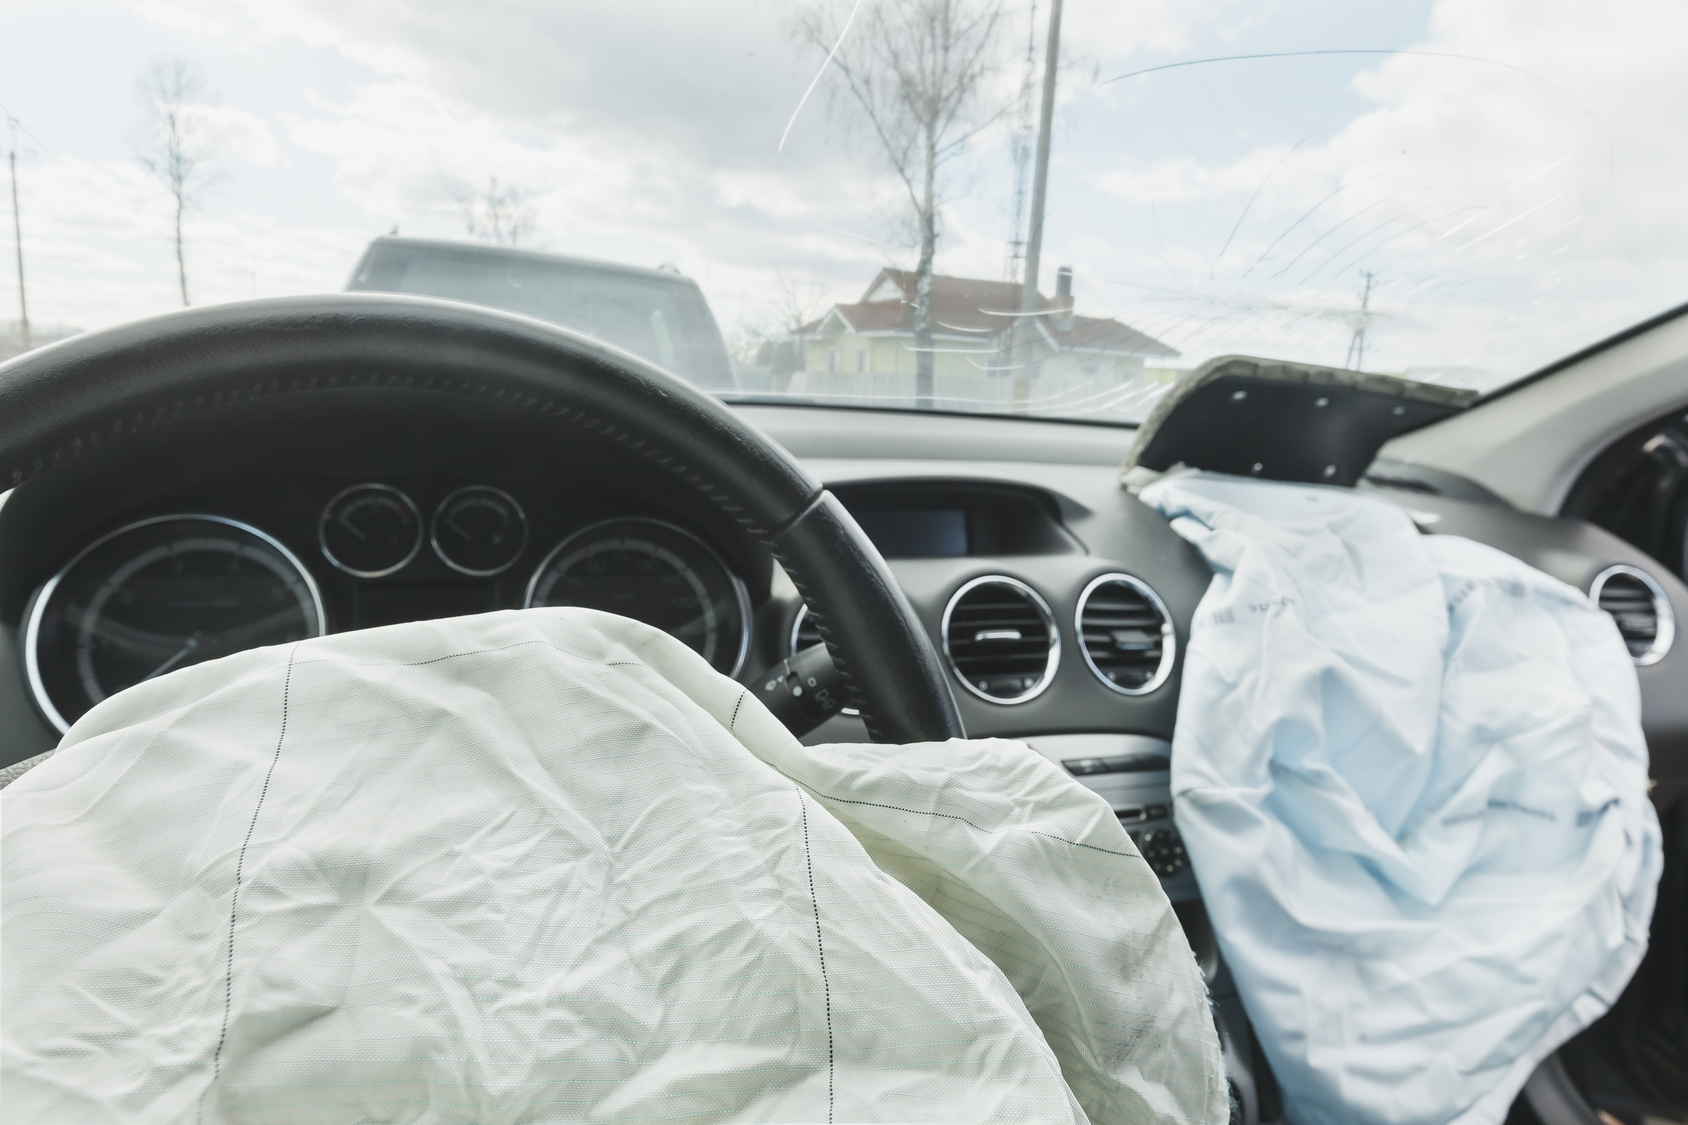 What Do You Need To Know About Takata Airbag Recalls & The NHSTA?